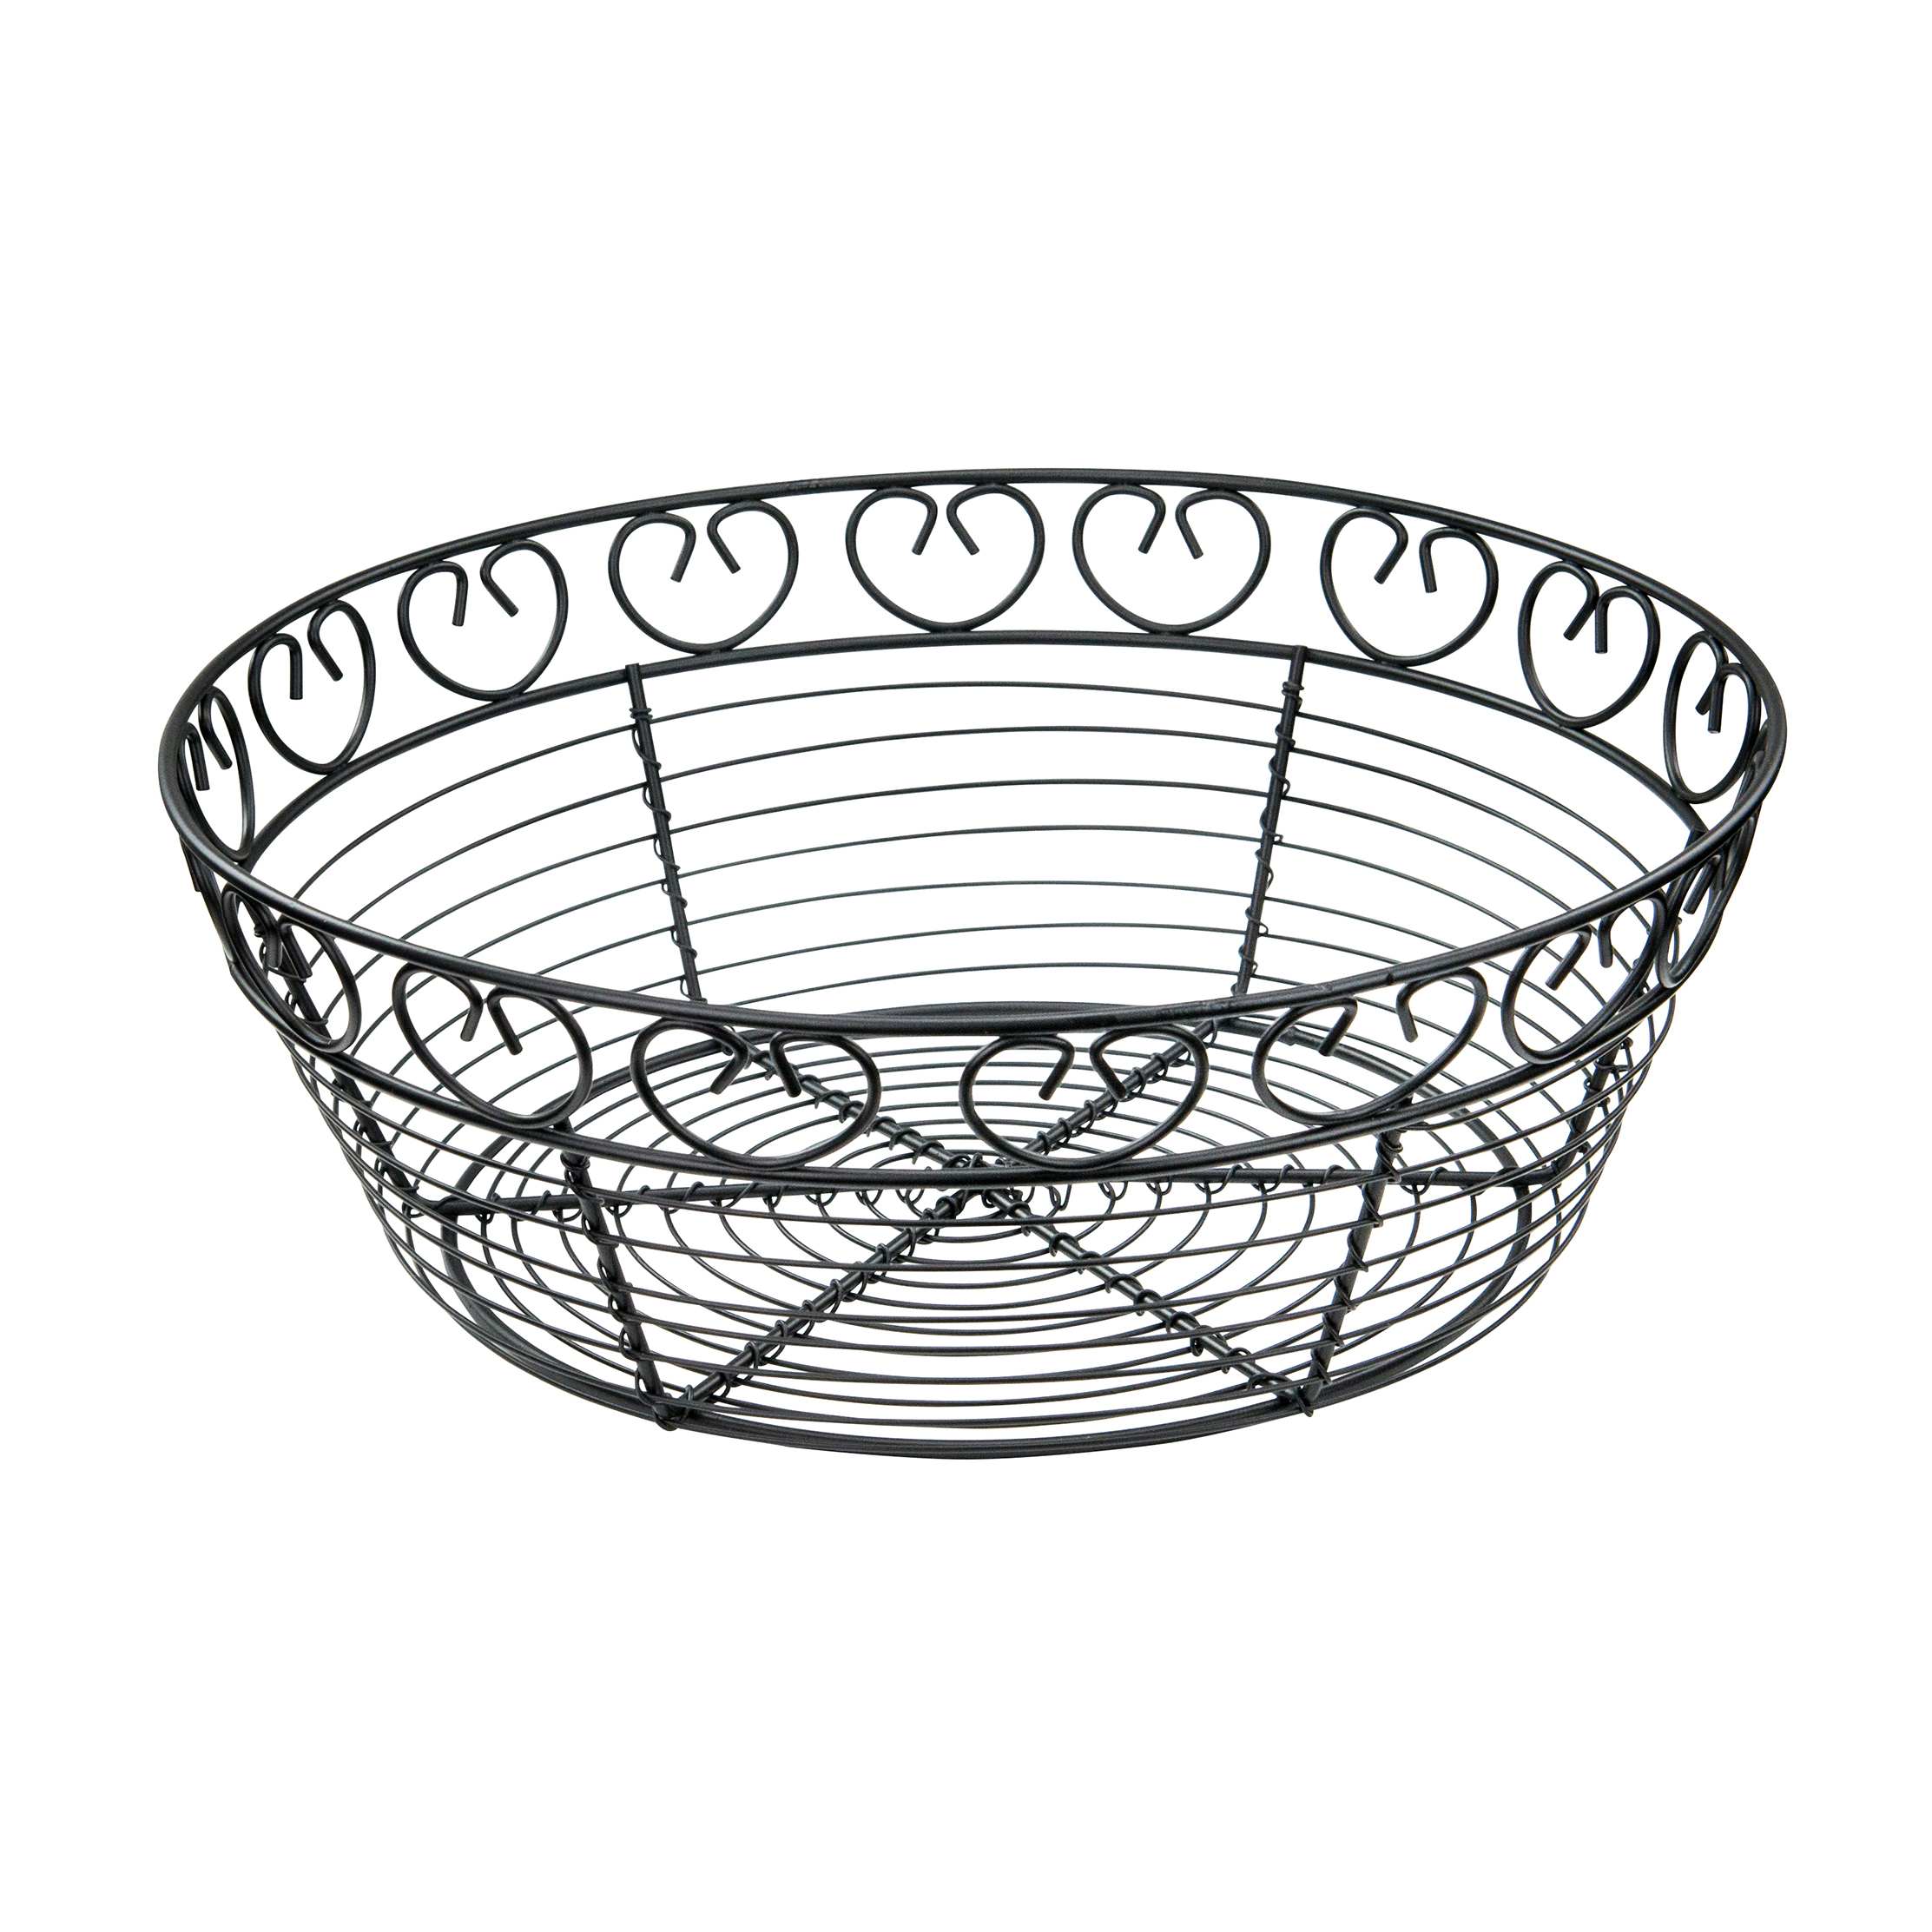 Winco WBKG-10R basket, tabletop, metal